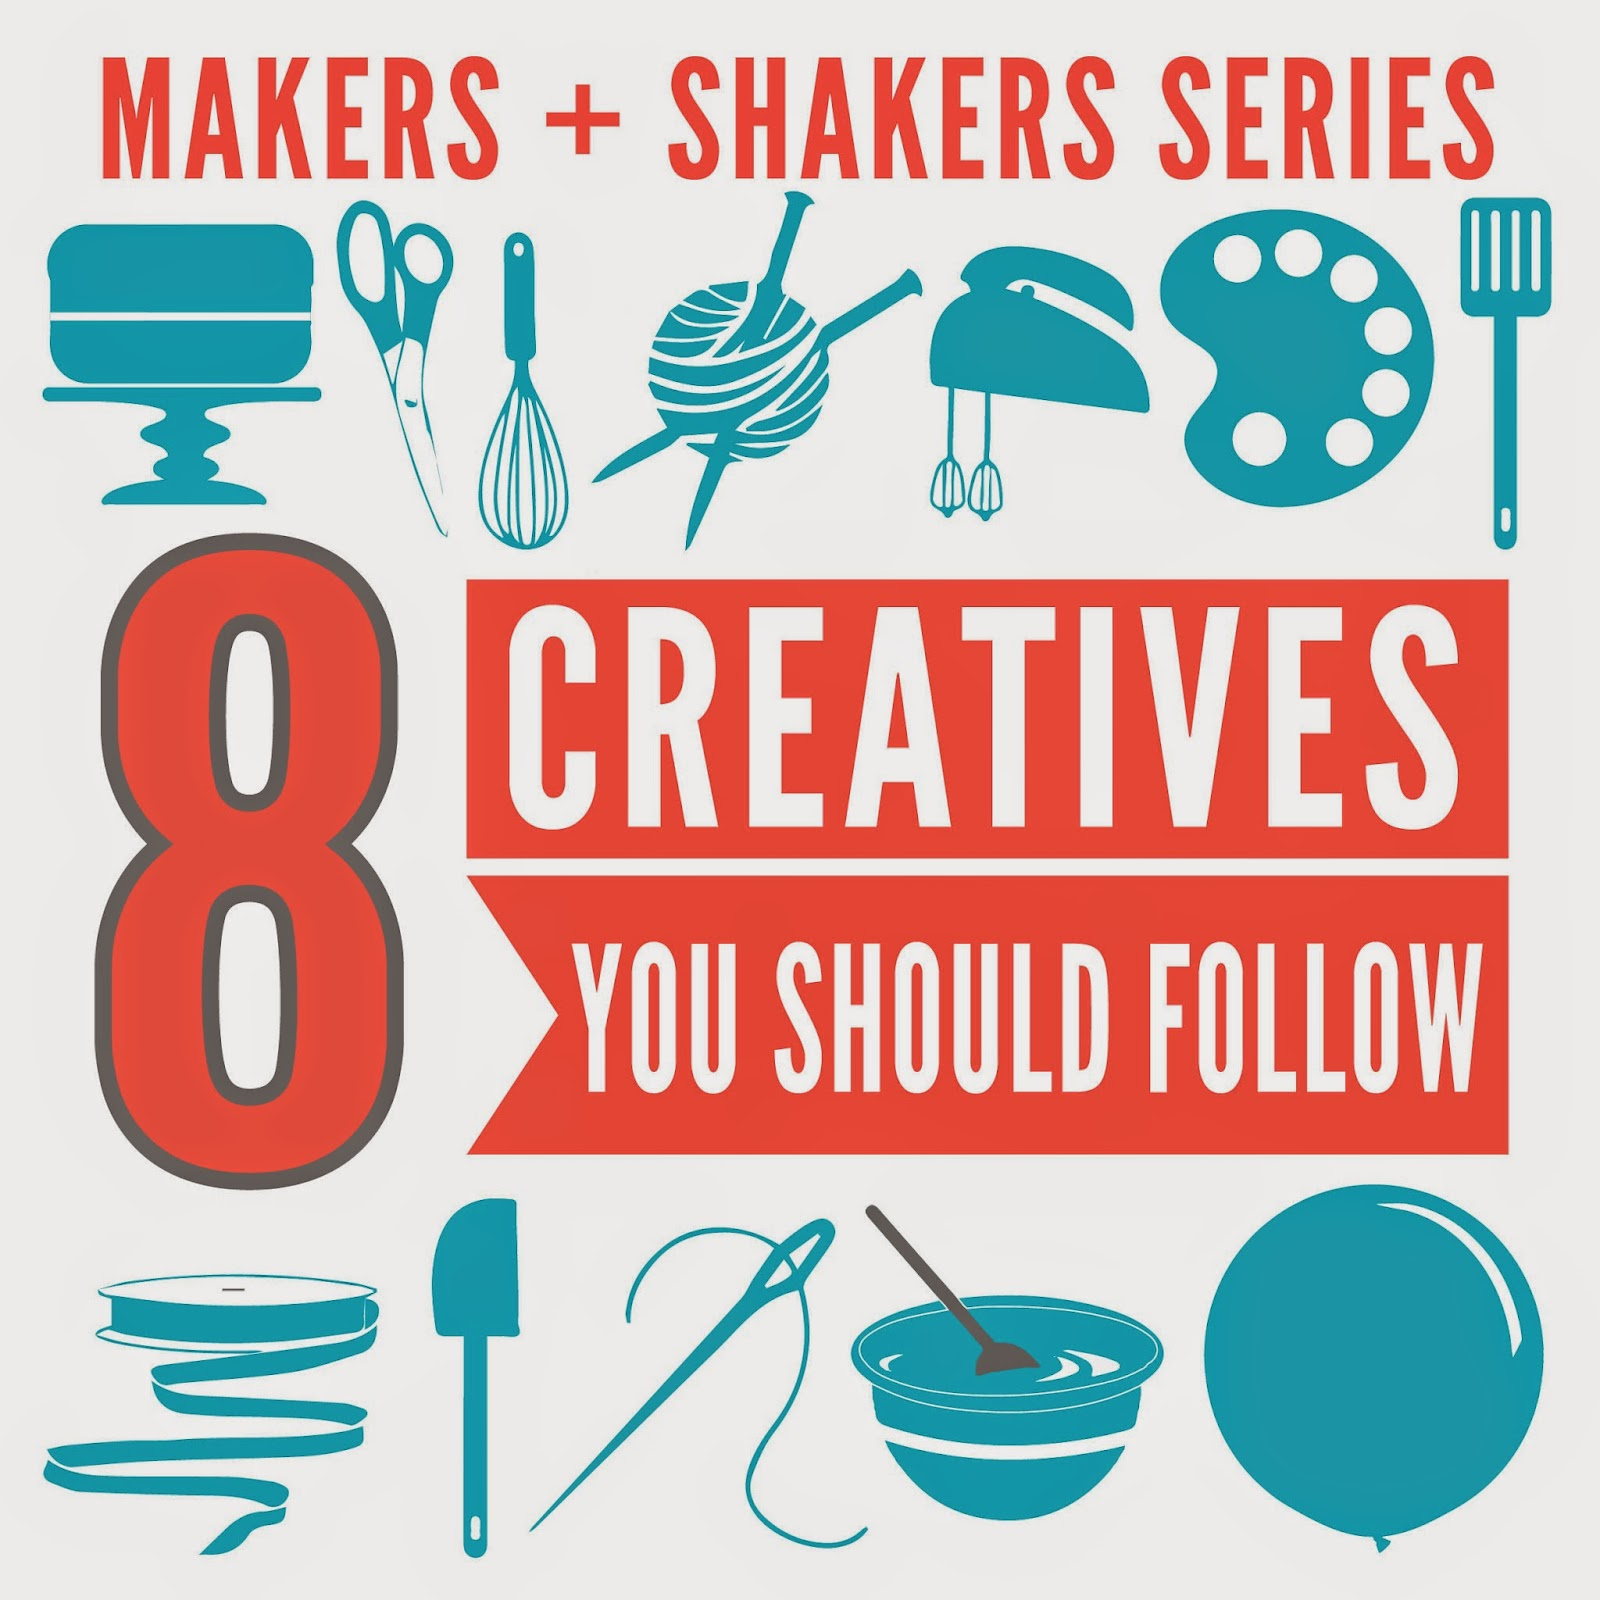 Makers + Shakers 8 Creatives you should follow